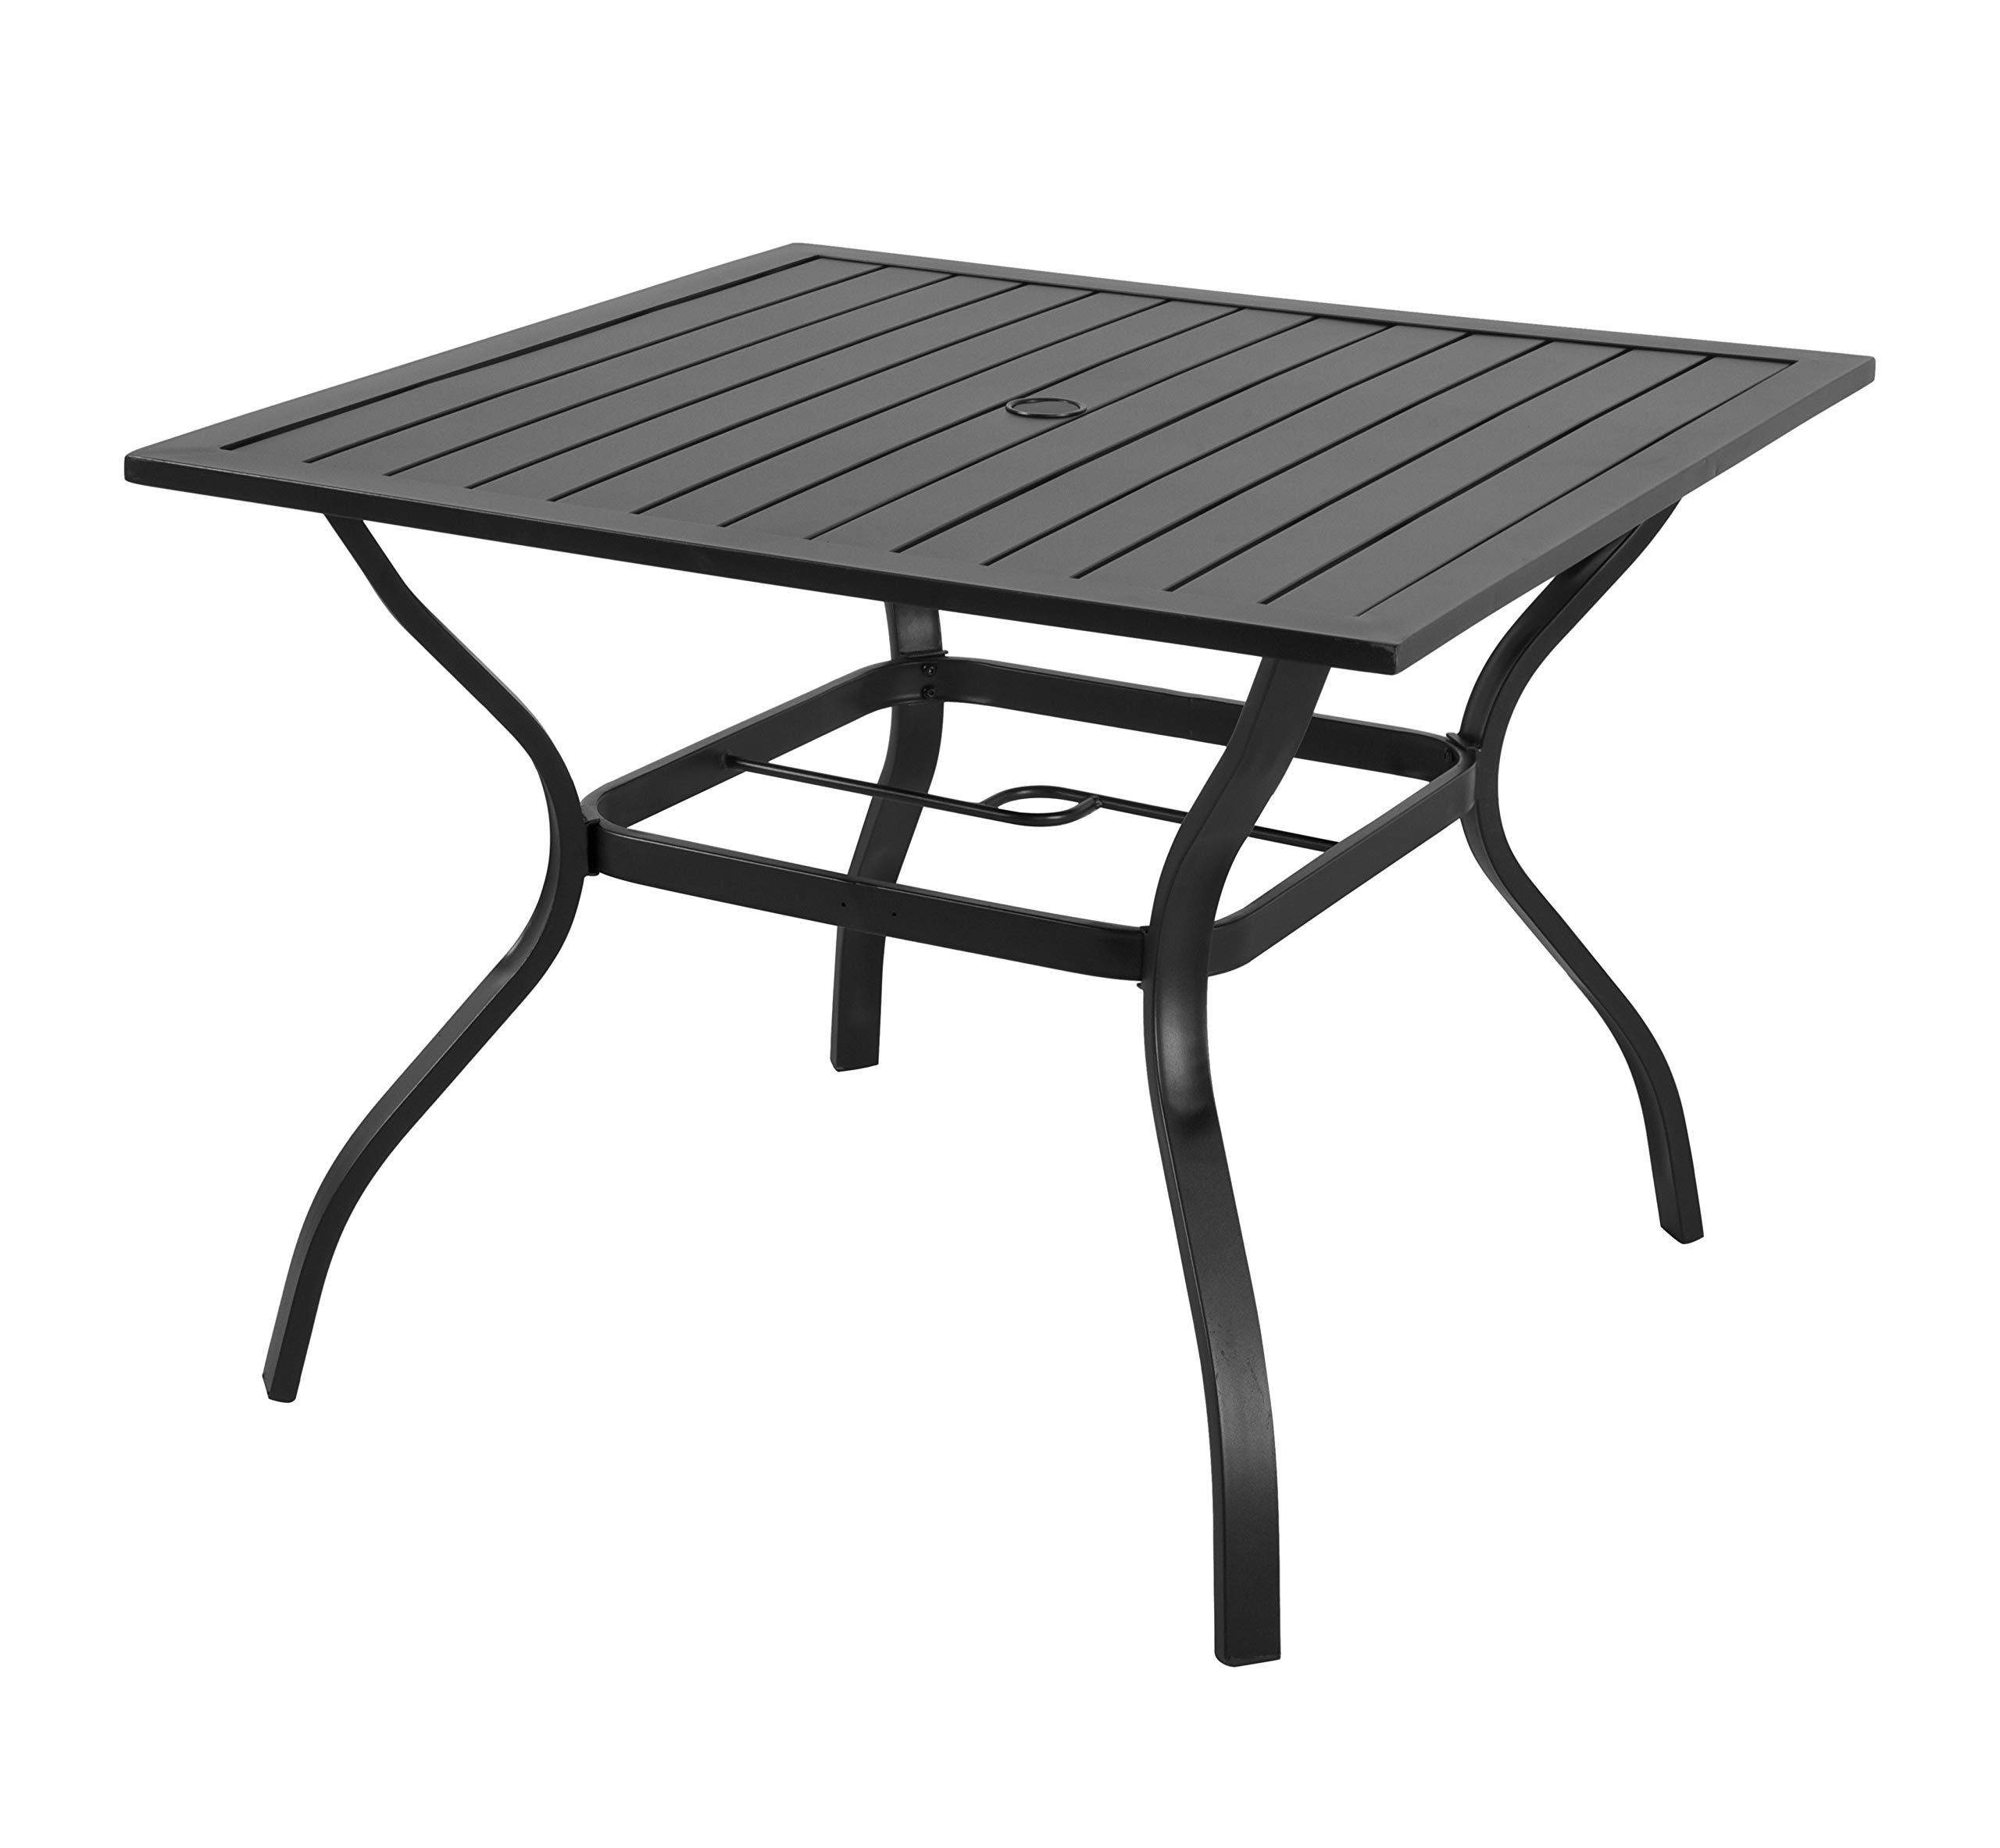 EMERIT Outdoor Patio Bistro Metal Dining Table with Umbrella Hole 37''x37'',Black (Dining Table)